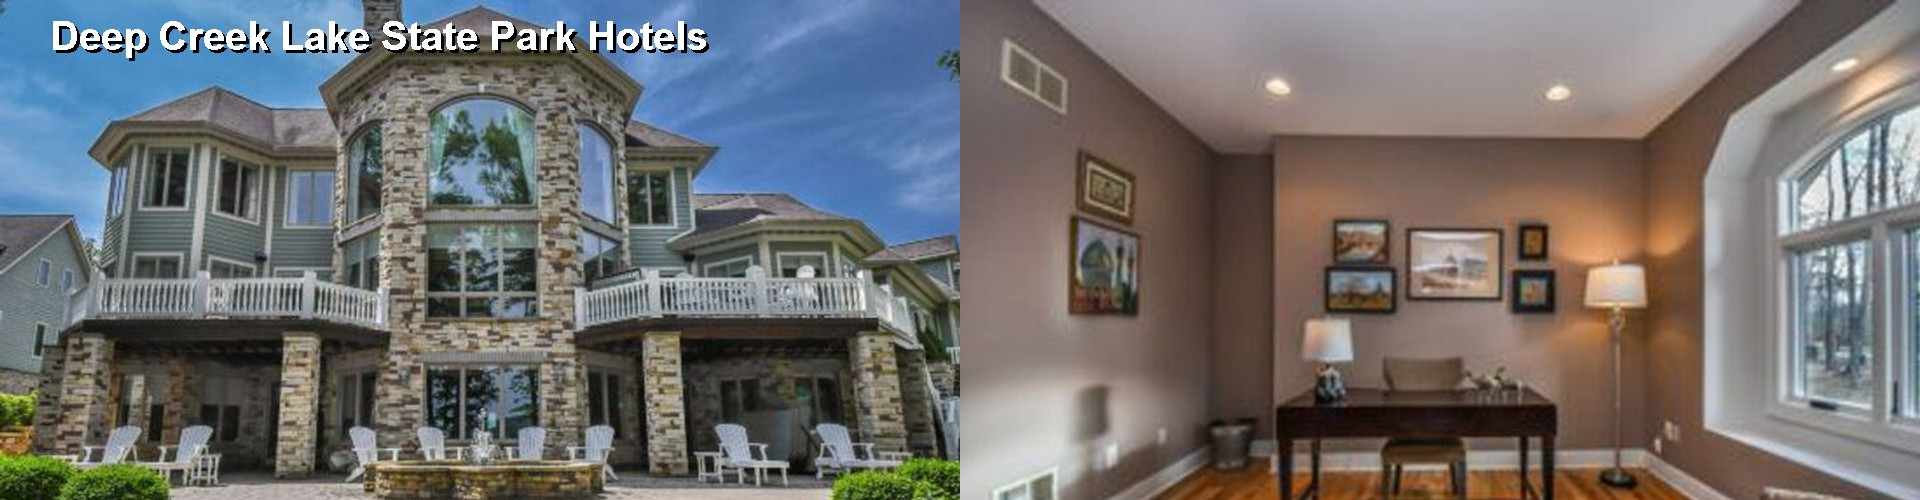 5 Best Hotels near Deep Creek Lake State Park